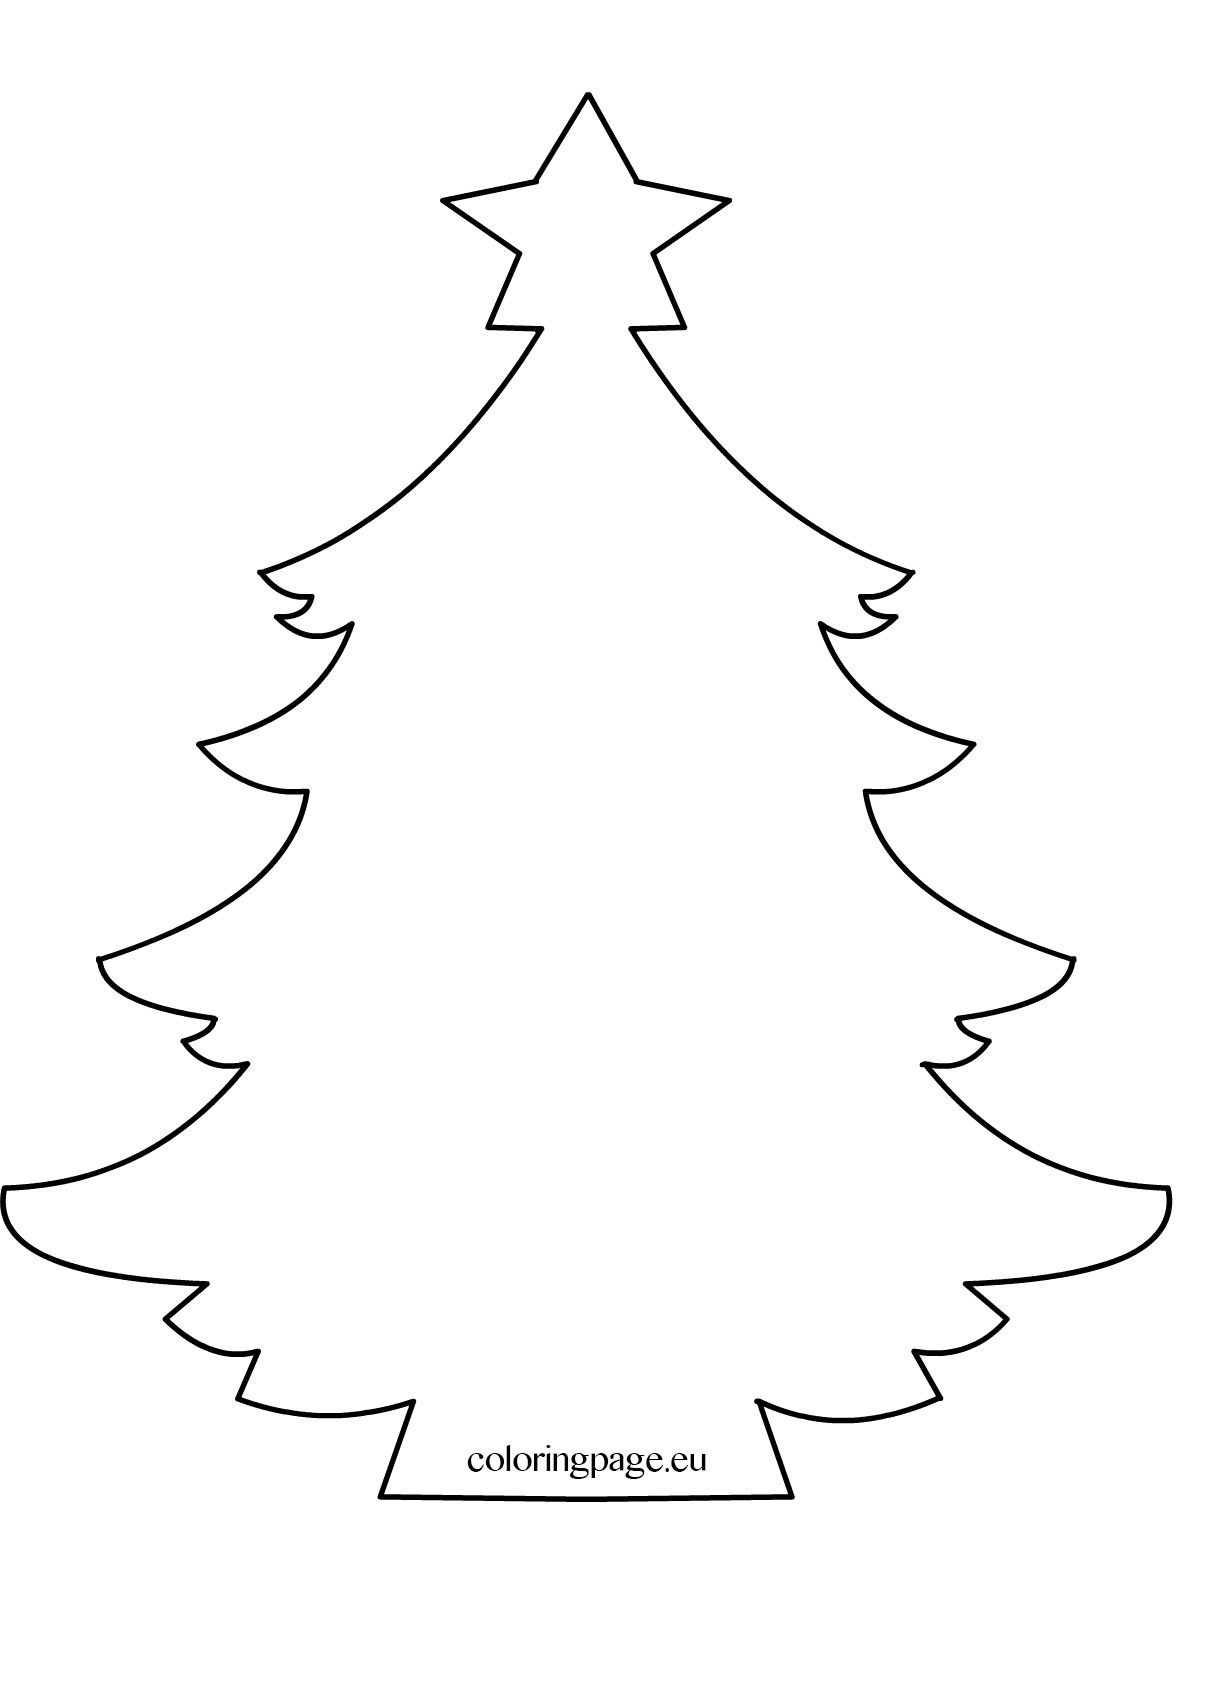 Free printable coloring pages for any occasion.  Christmas tree